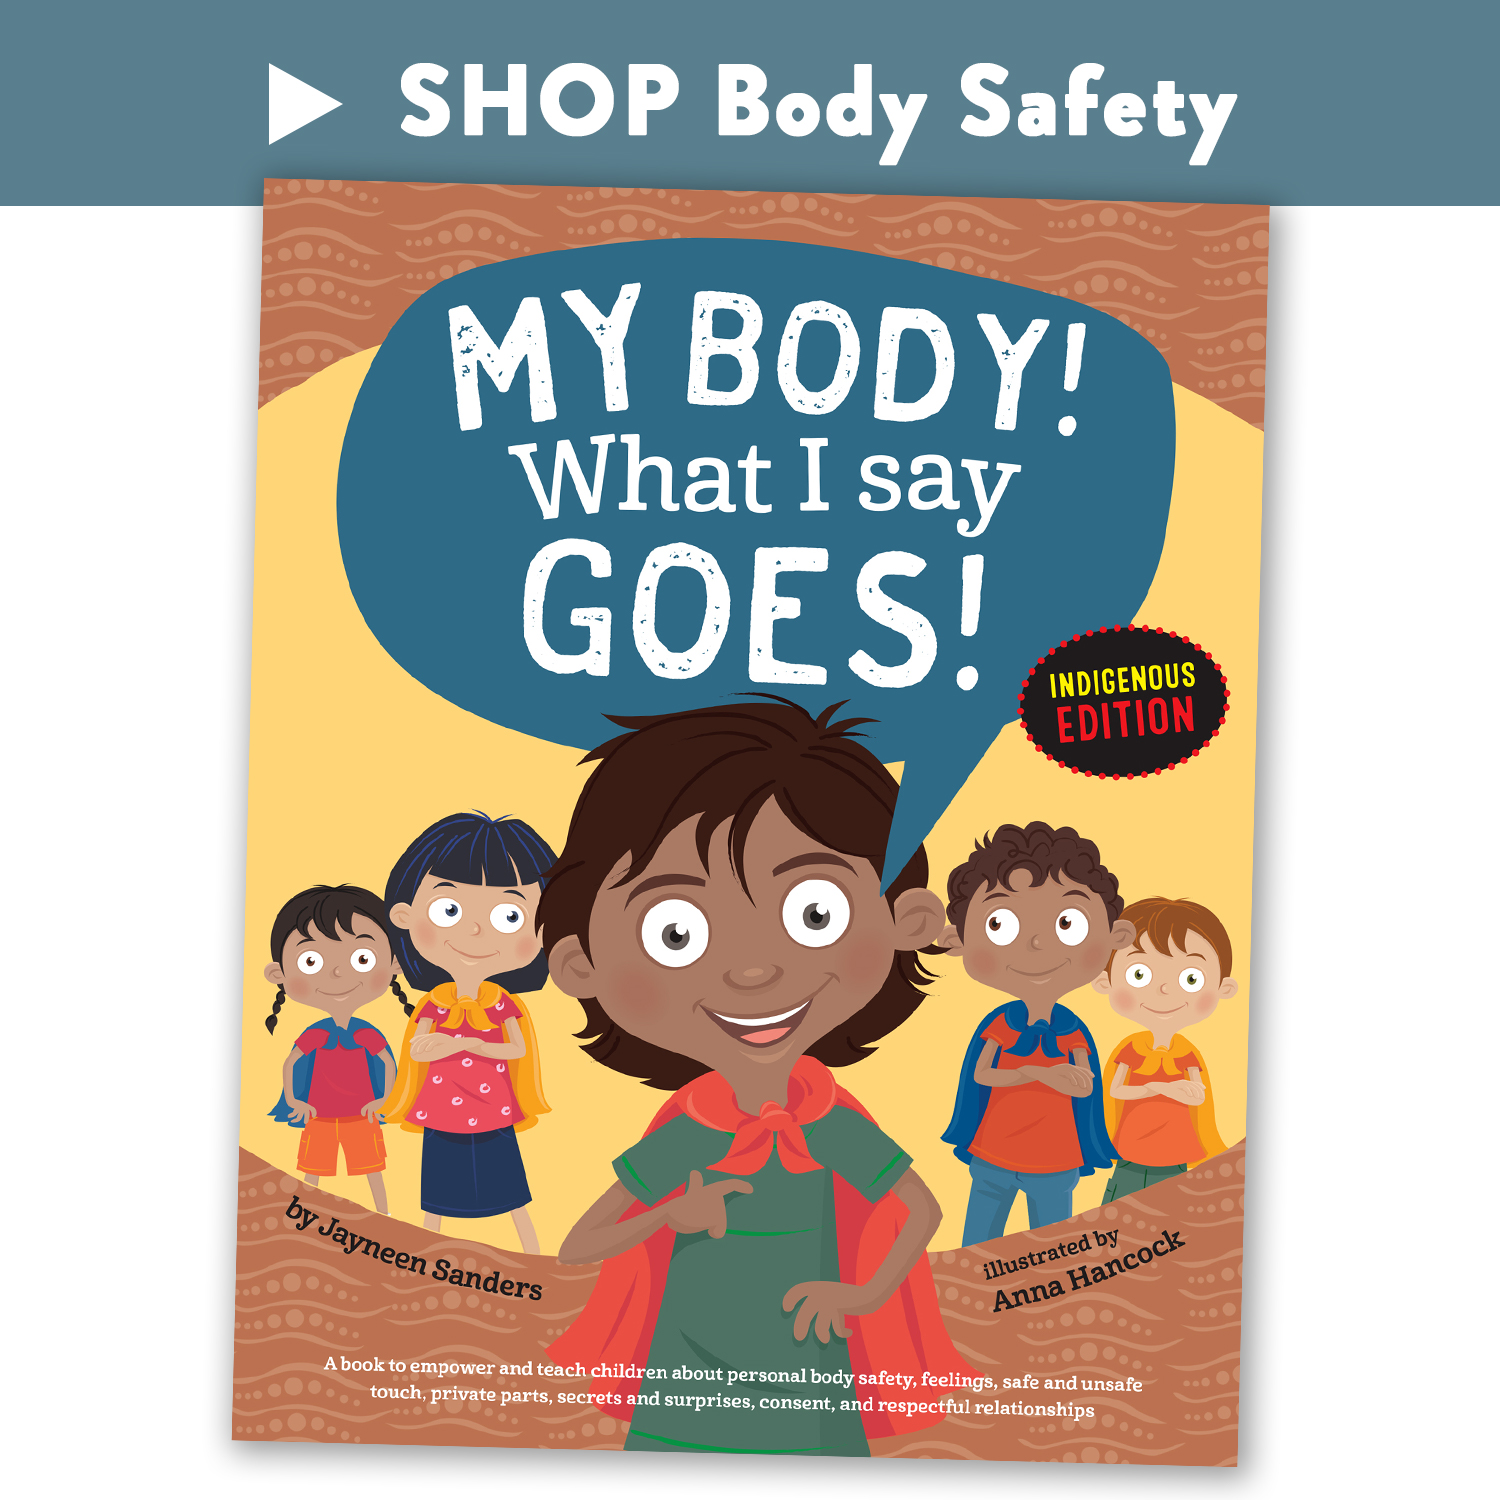 E2E_shop_BodySafety_6-MBIE.jpg